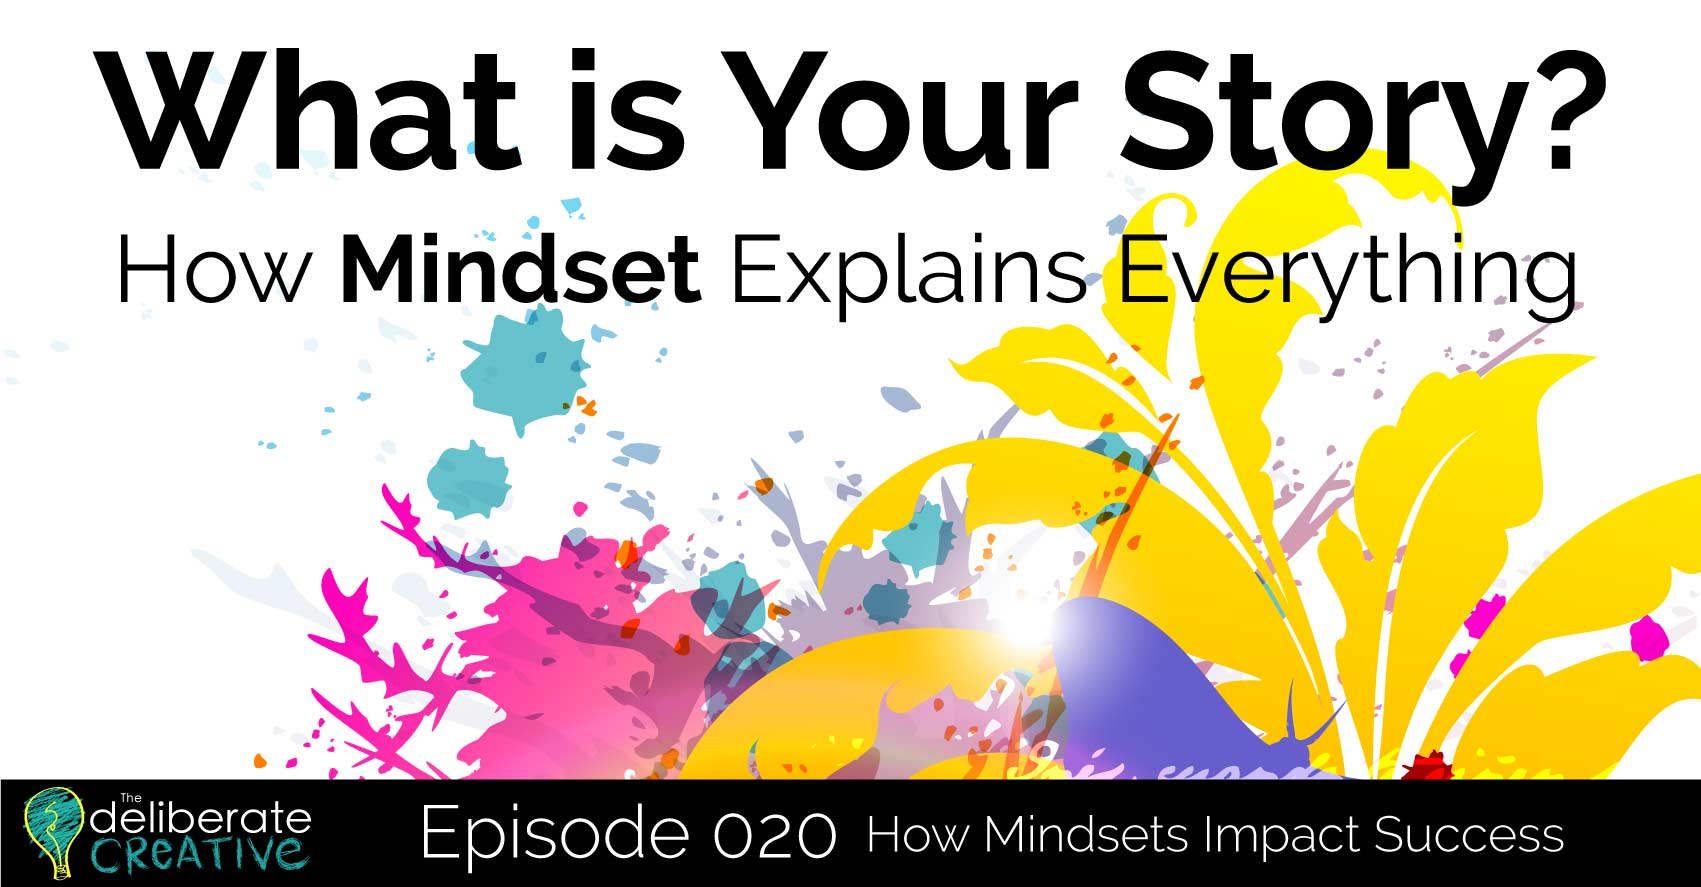 How Mindset Explains Everything: The Deliberate Creative Podcast episode 20